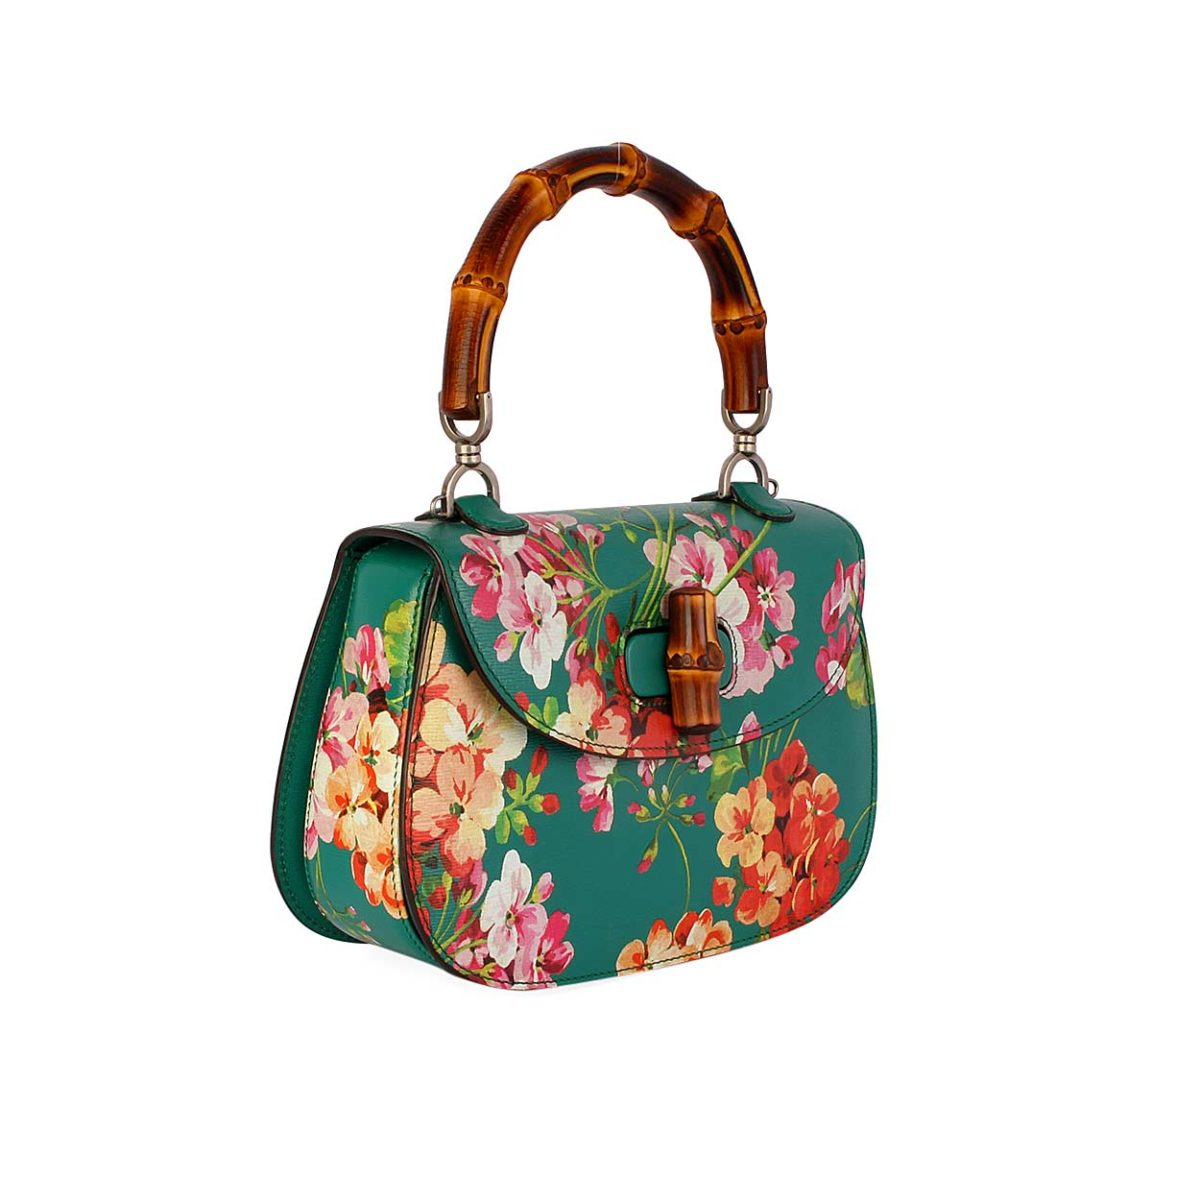 6f39764afe75ec GUCCI Bamboo Leather Classic Blooms Top Handle Bag Emerald Green ...